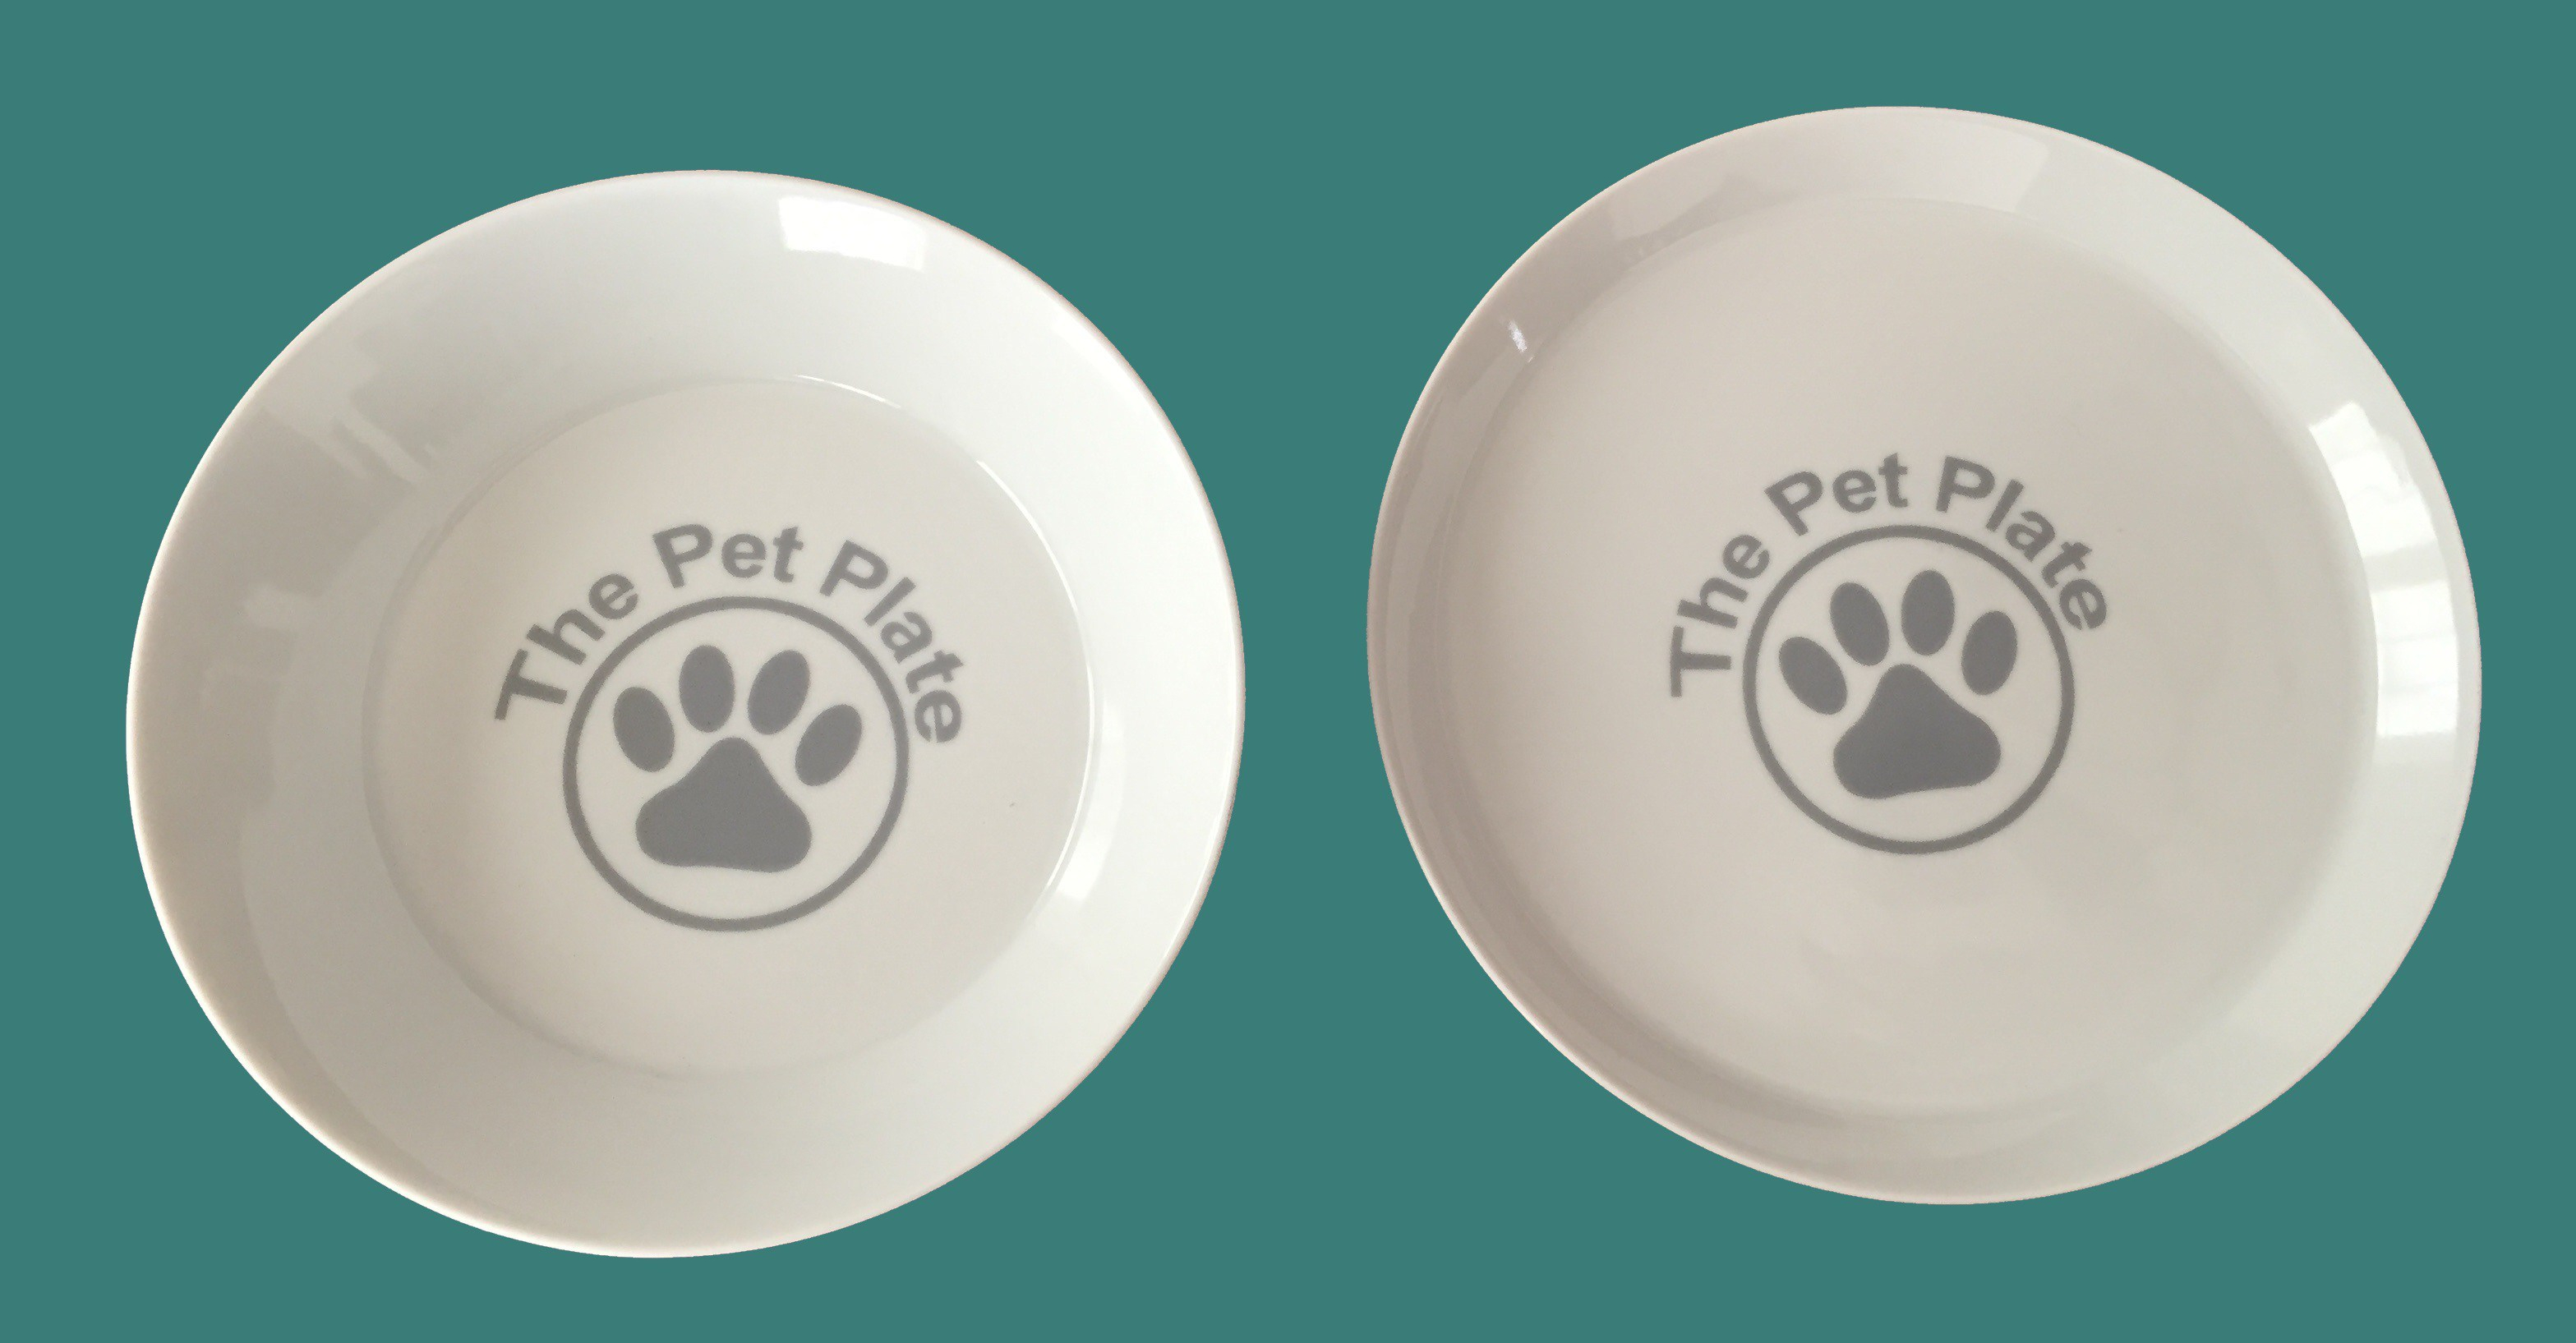 the-pet-plate-feeding-system-blue1-e1536152433803.jpg